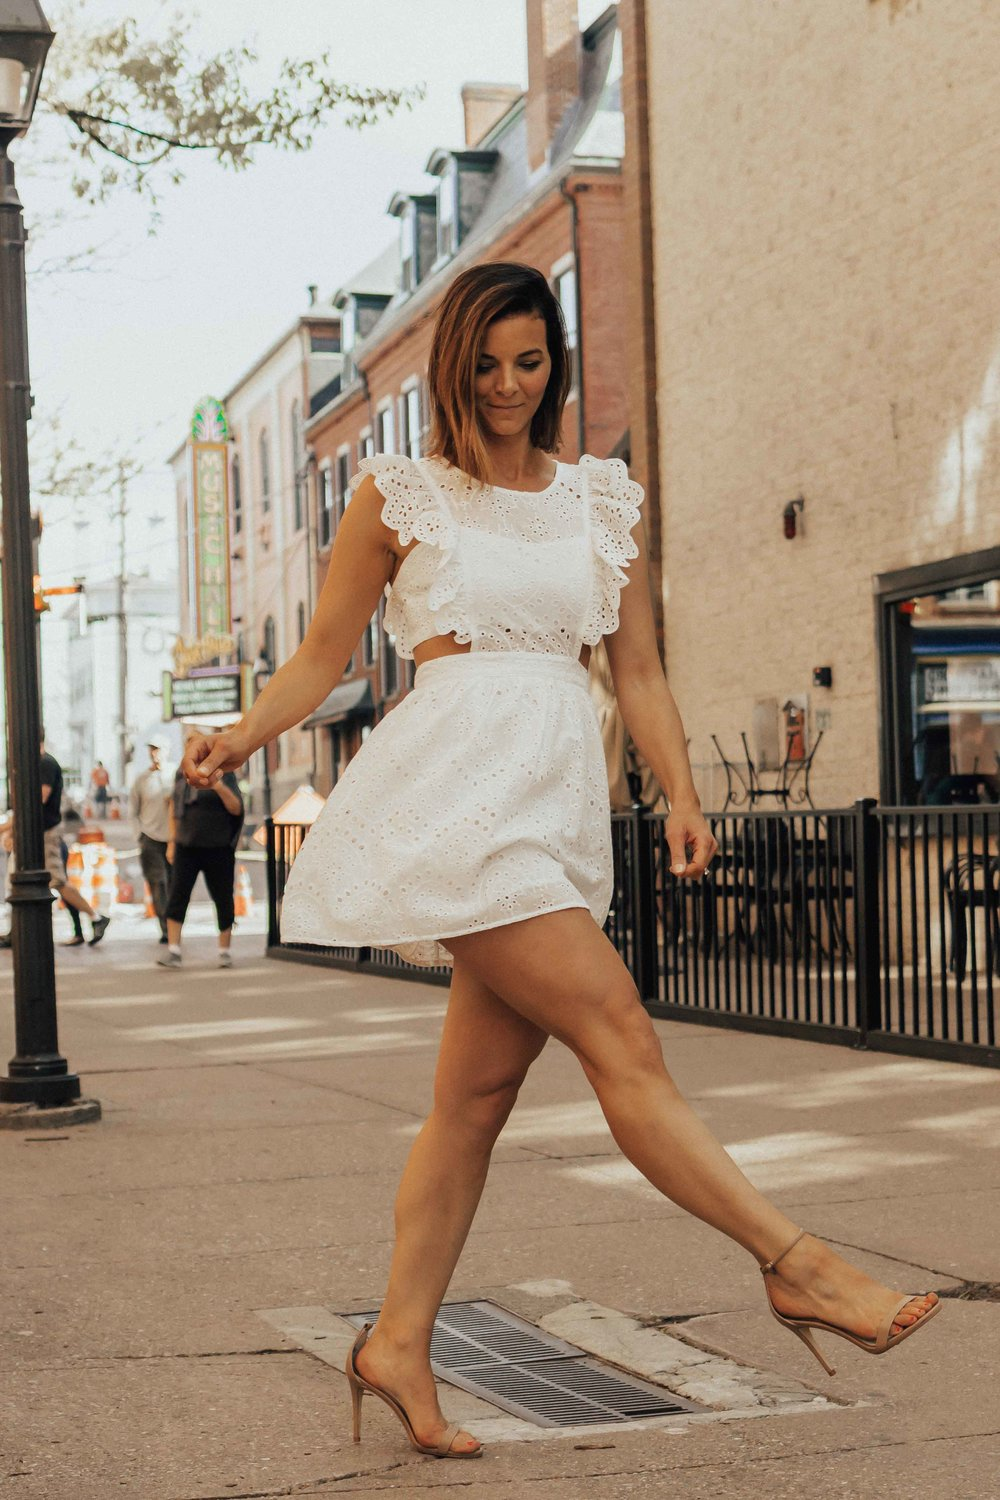 White Dress Outfits - Summer Outfits - White Dresses for Summer - Fashion for Women - White Dresses -  www.heartandseam.com  - #heartandseam #whitedresses